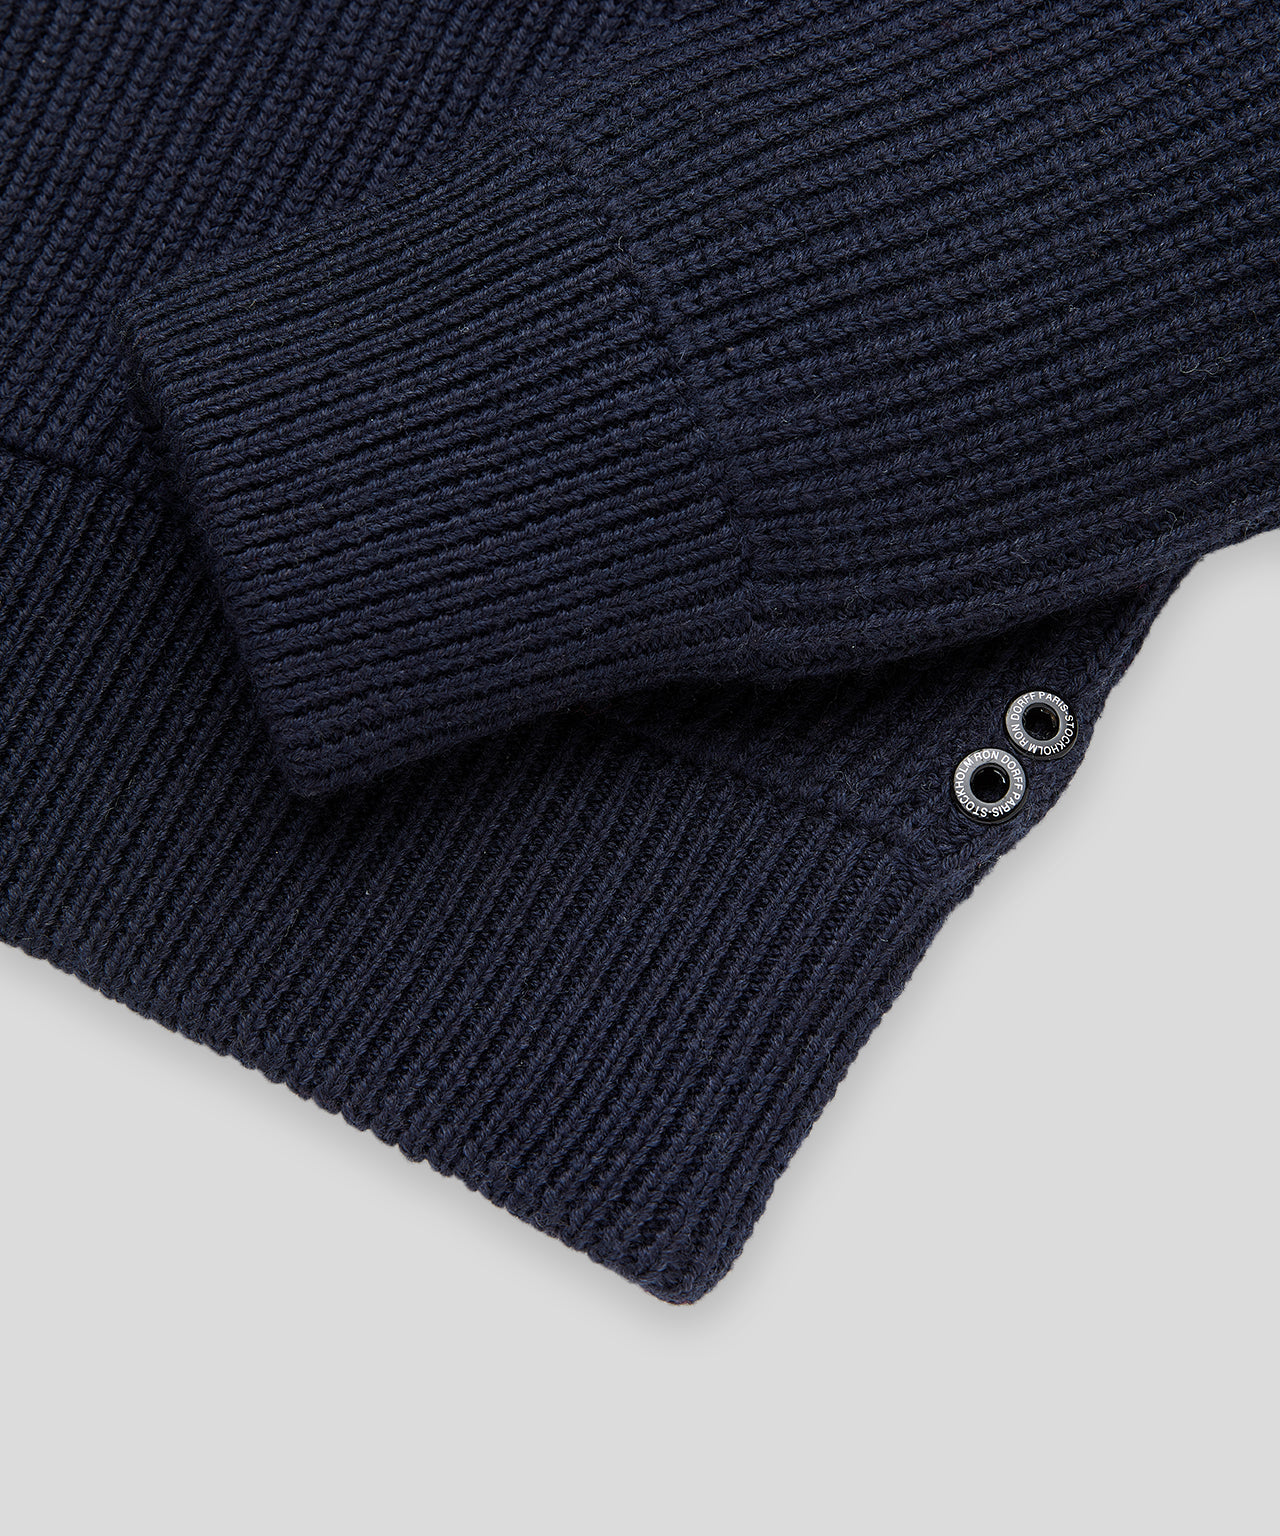 Zipped Wool Sweater - navy